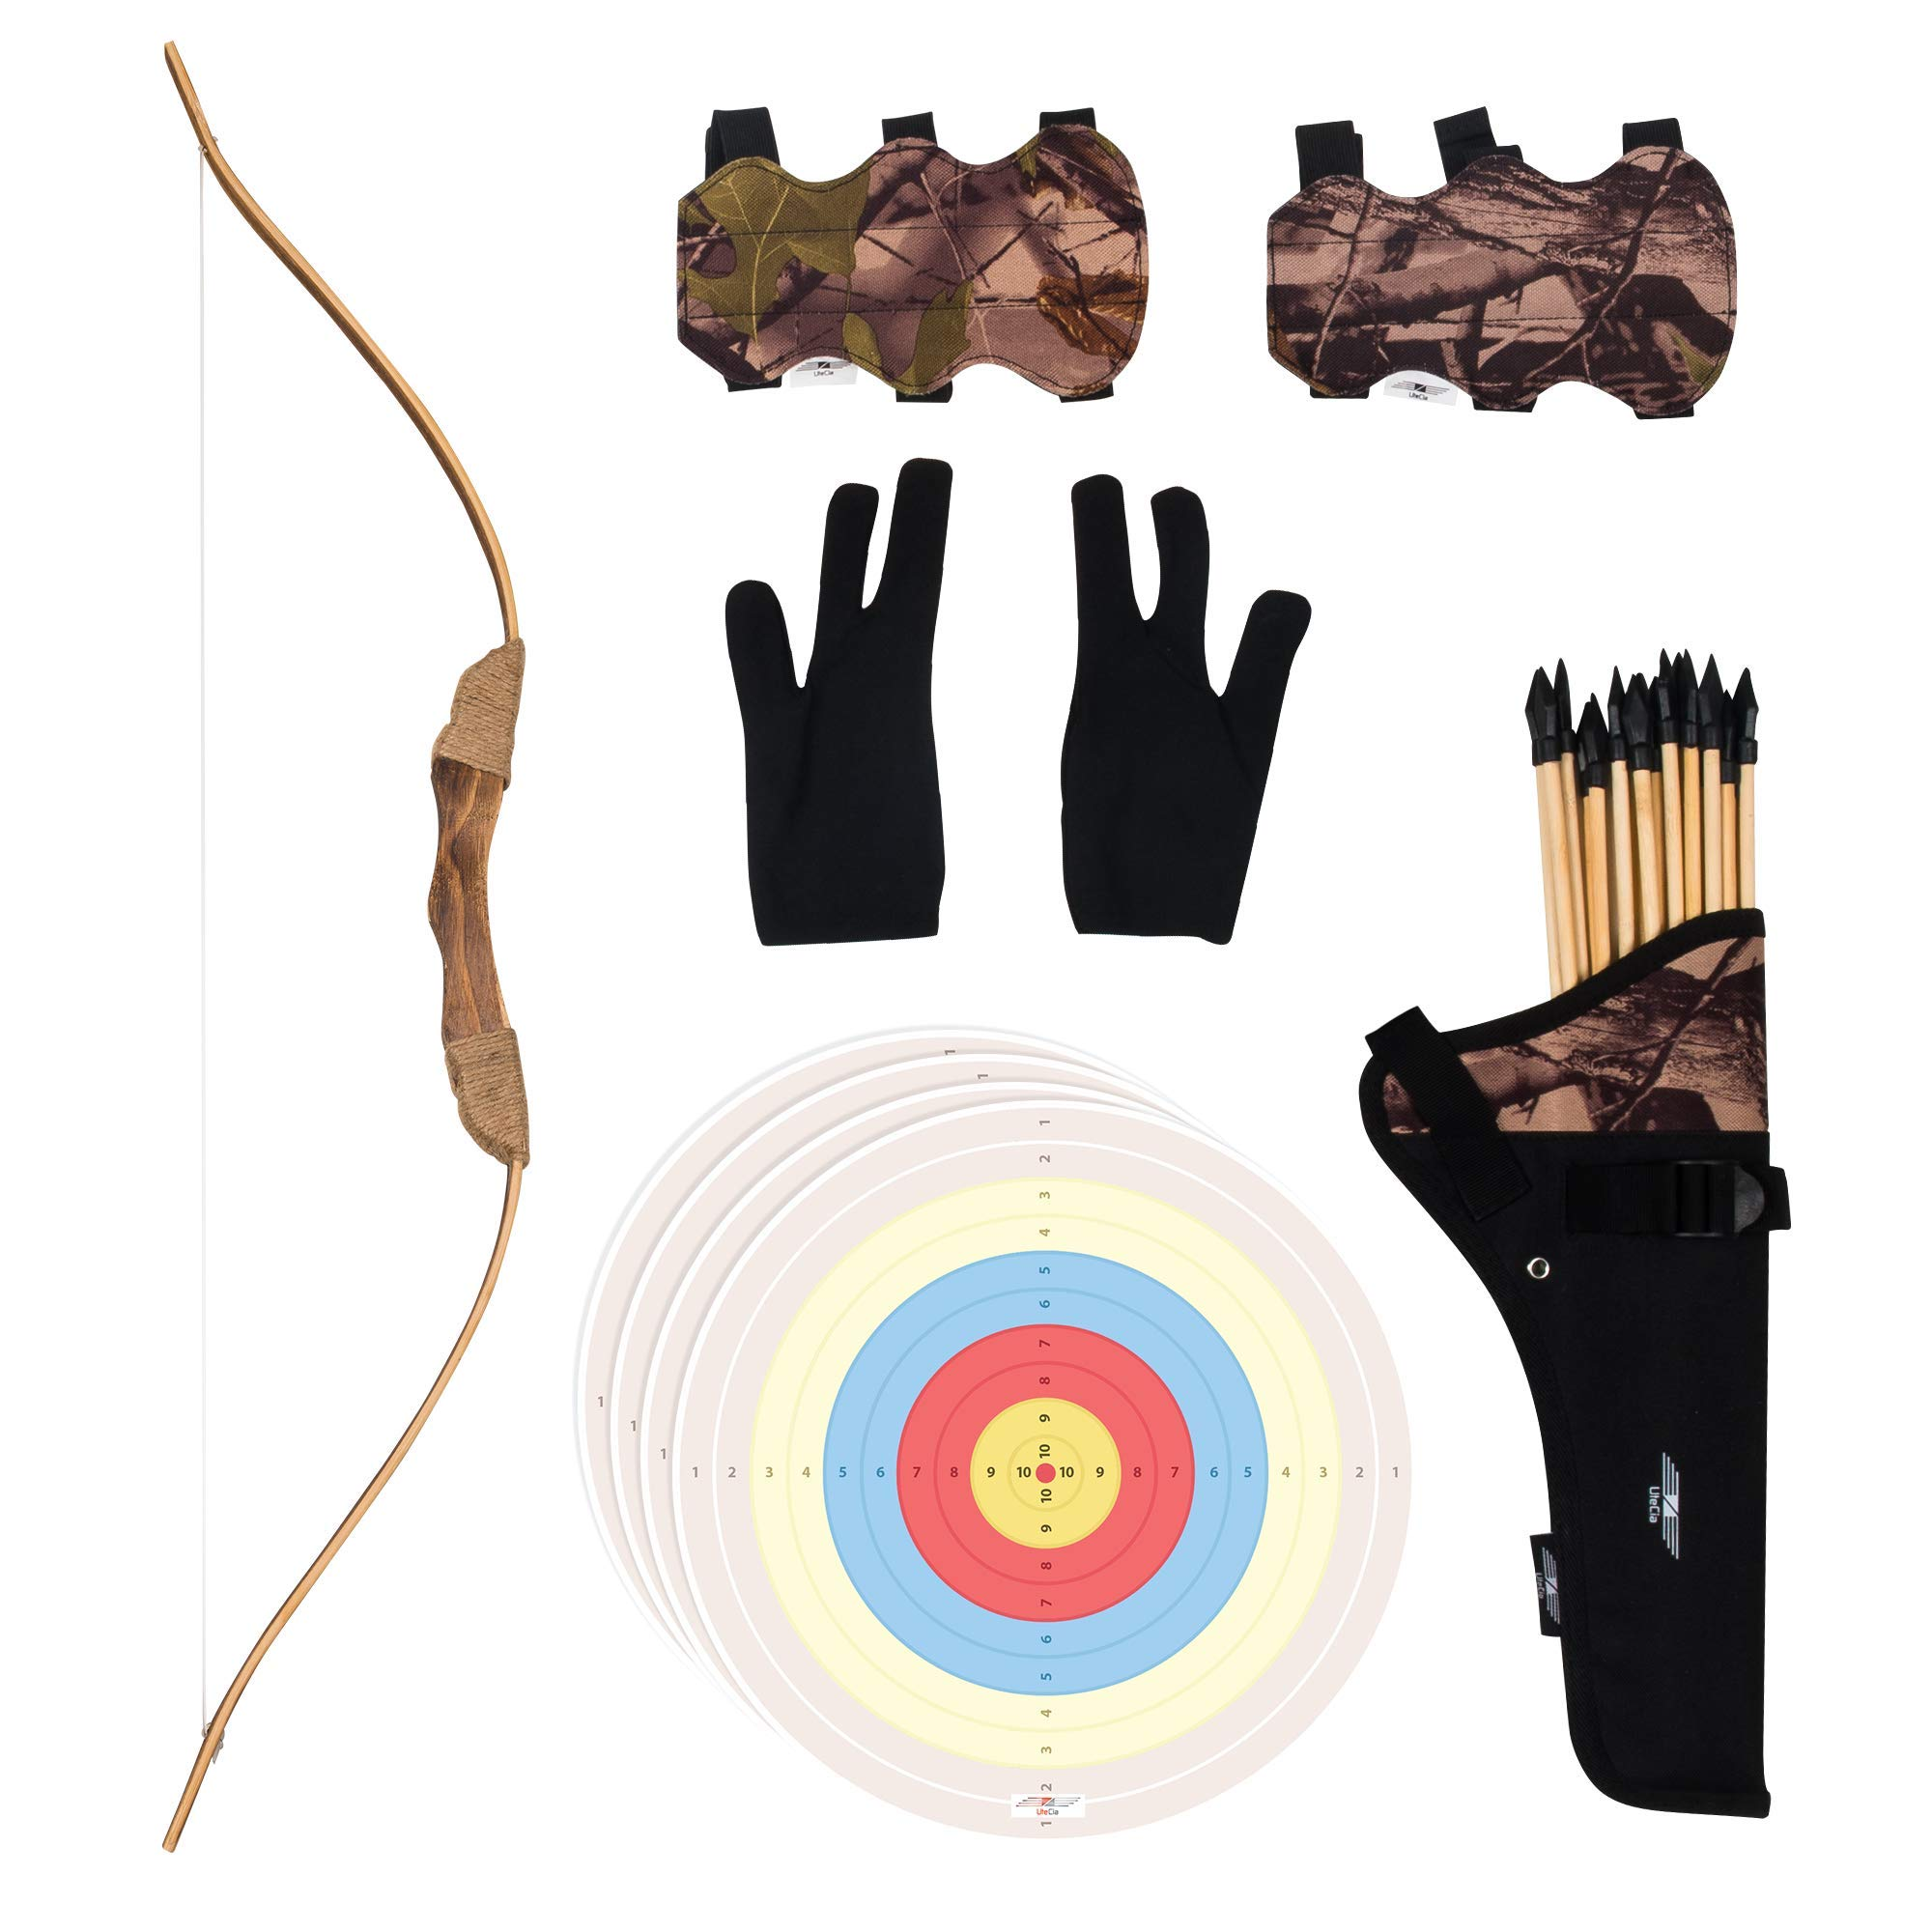 UTeCiA 30 Pcs Complete Archery Set for Kids & Beginners - Safety Rubber Tip Arrow Pack, Handcrafted Wooden Bow, Fabric Quiver, Arm Guard, Finger Glove, Target Sheets - Outdoor and Indoor Shooting Toy by UTeCiA